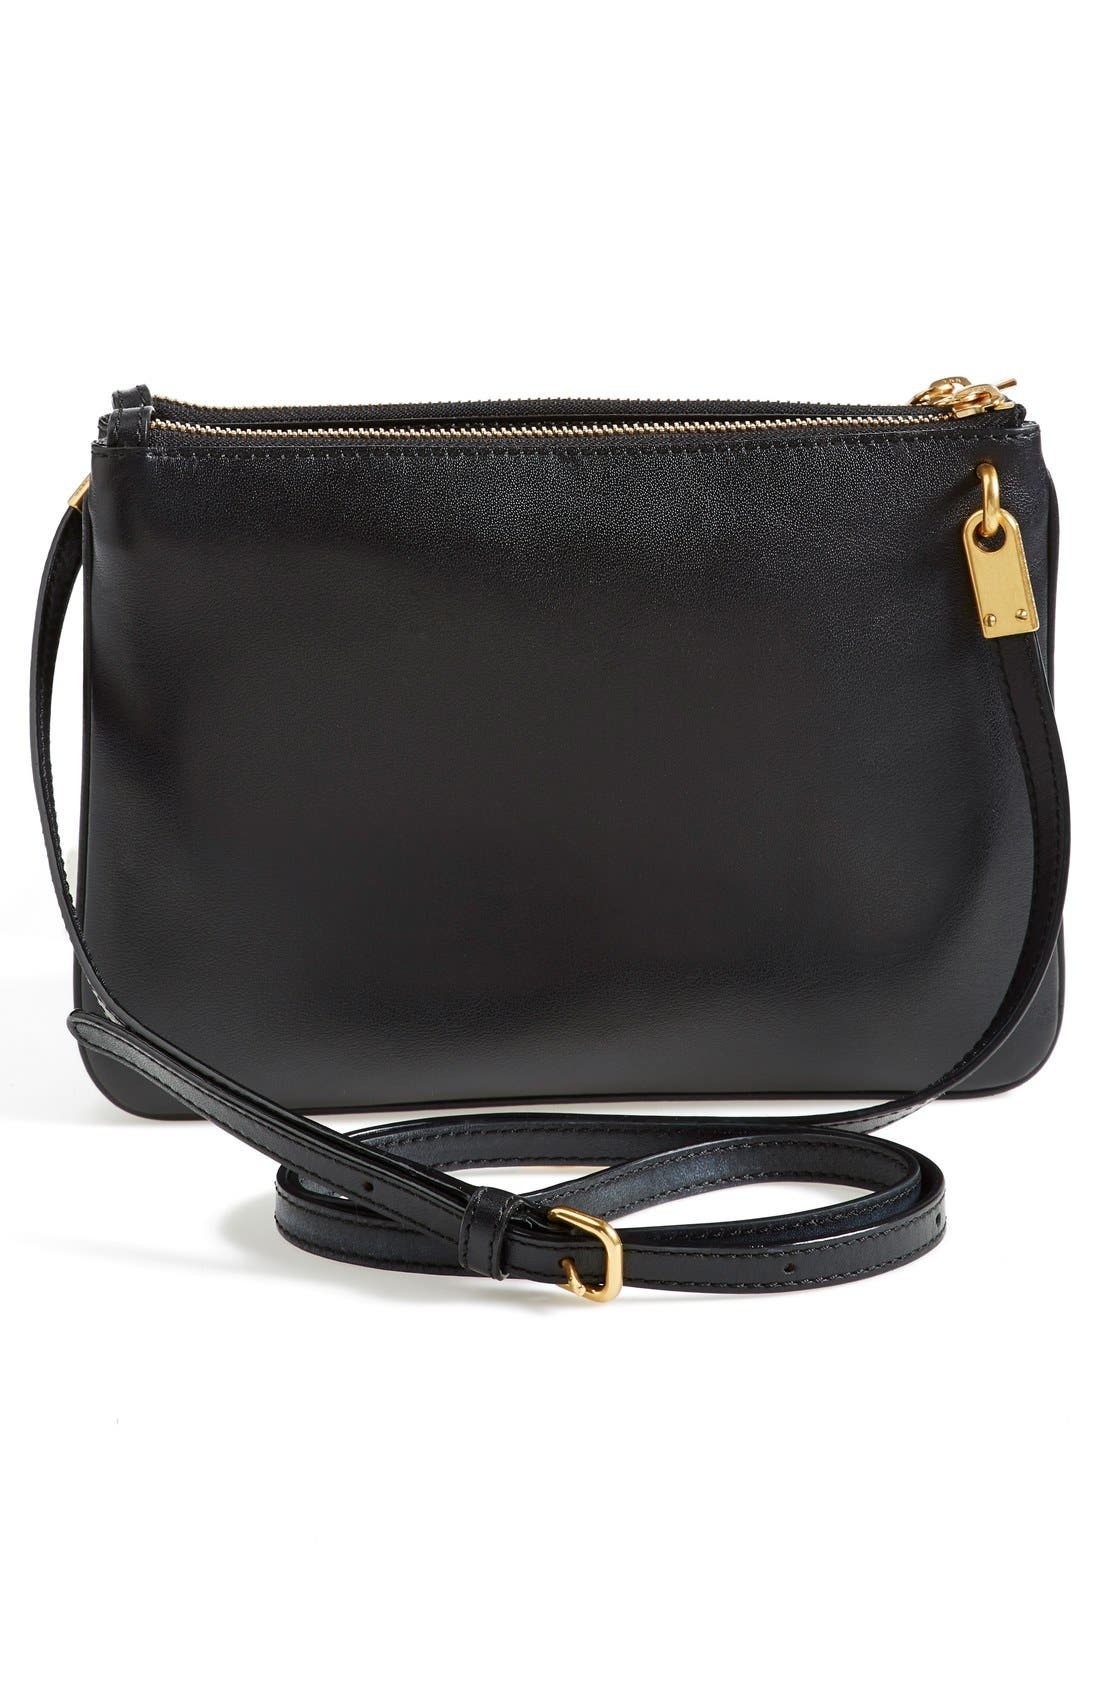 MARC JACOBS,                             MARC BY MARC JACOBS 'Double Percy' Crossbody Bag,                             Alternate thumbnail 4, color,                             001